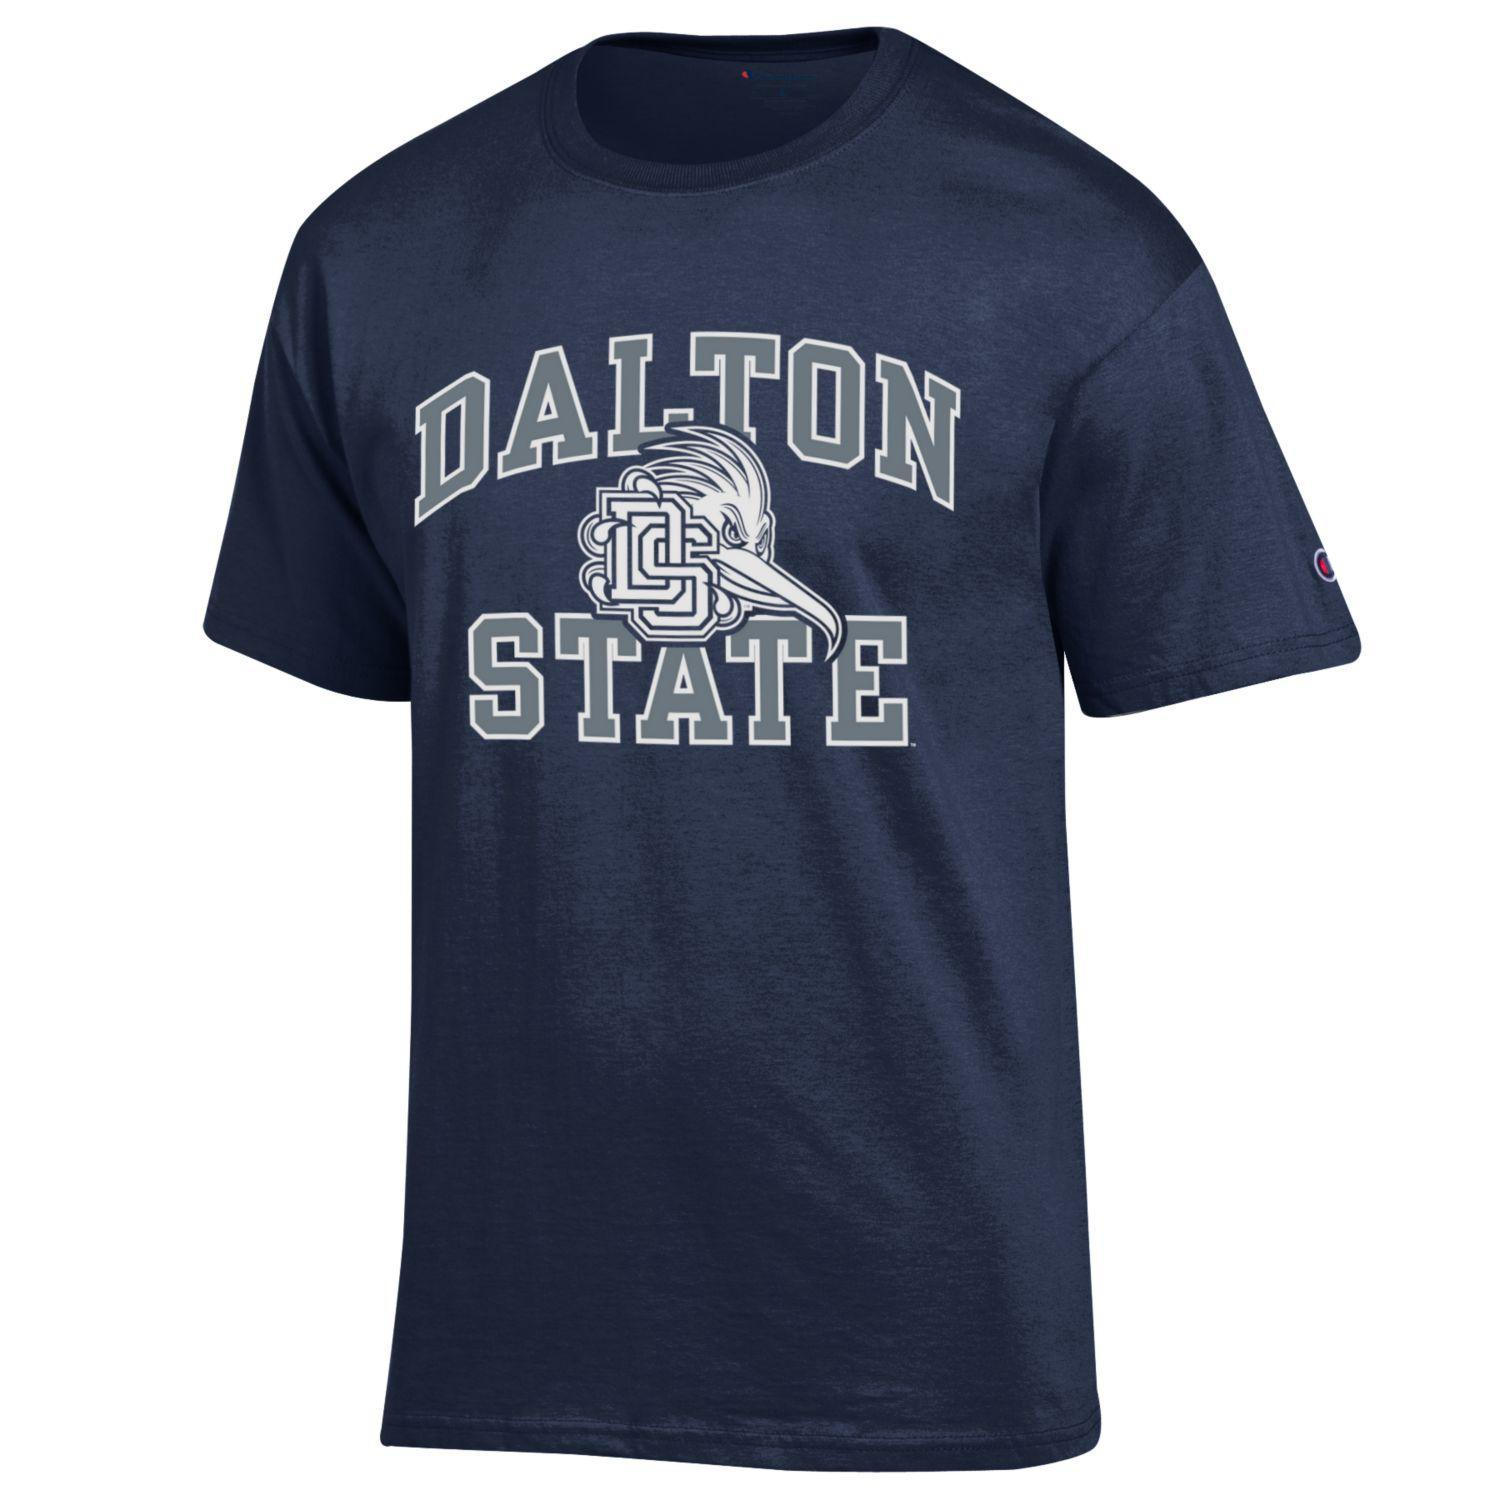 Dalton State DS Roadrunner Logo Arch Short Sleeve T-Shirt